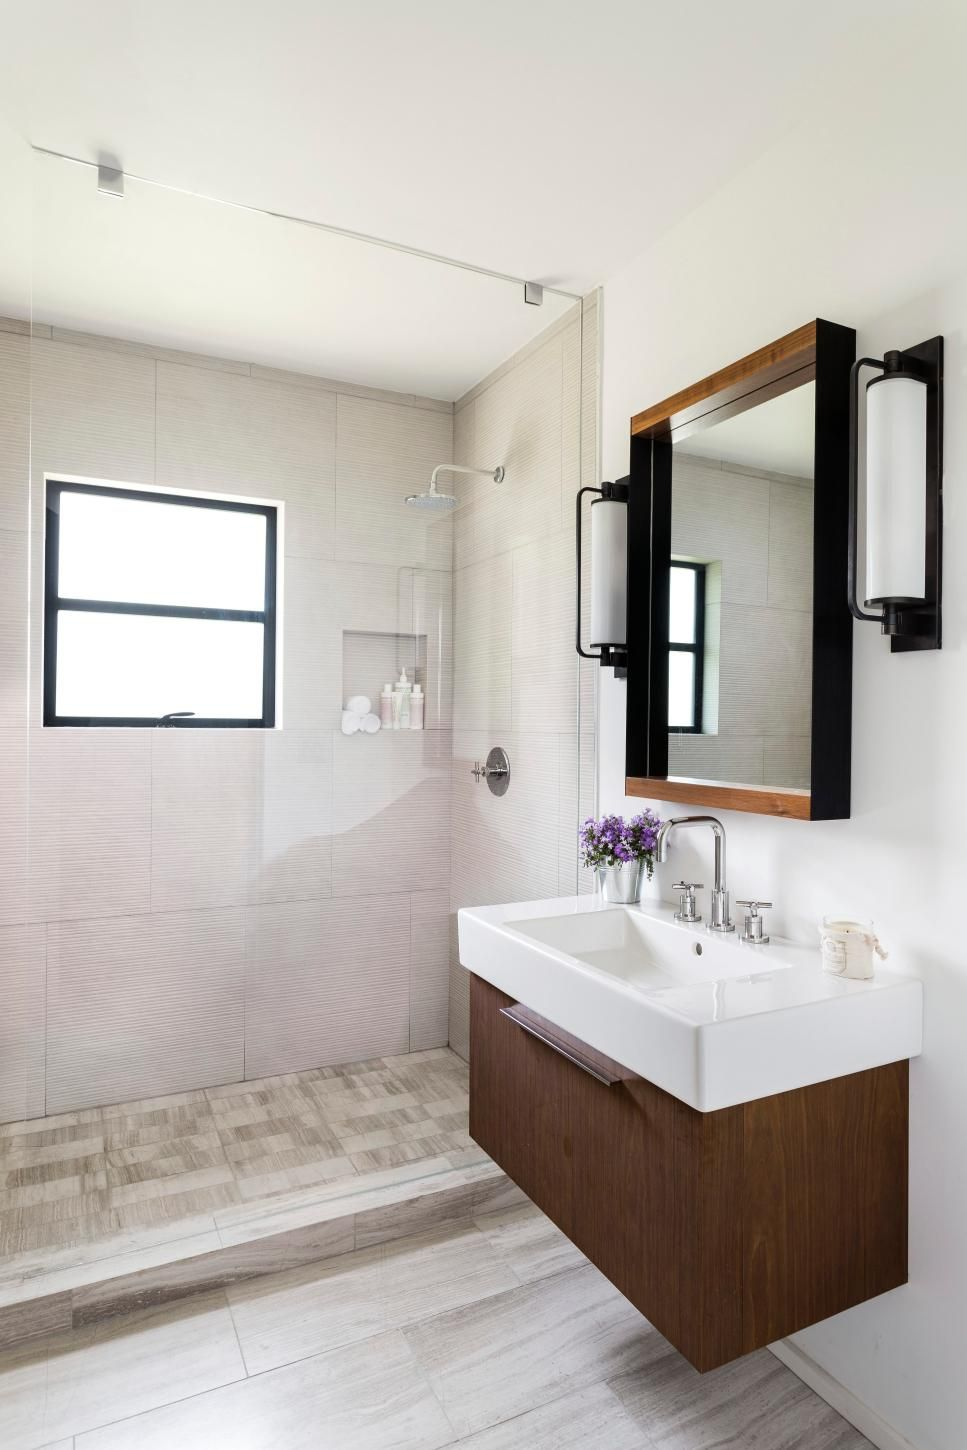 Before-and-After Bathroom Remodels on a Budget | Swinging doors ...